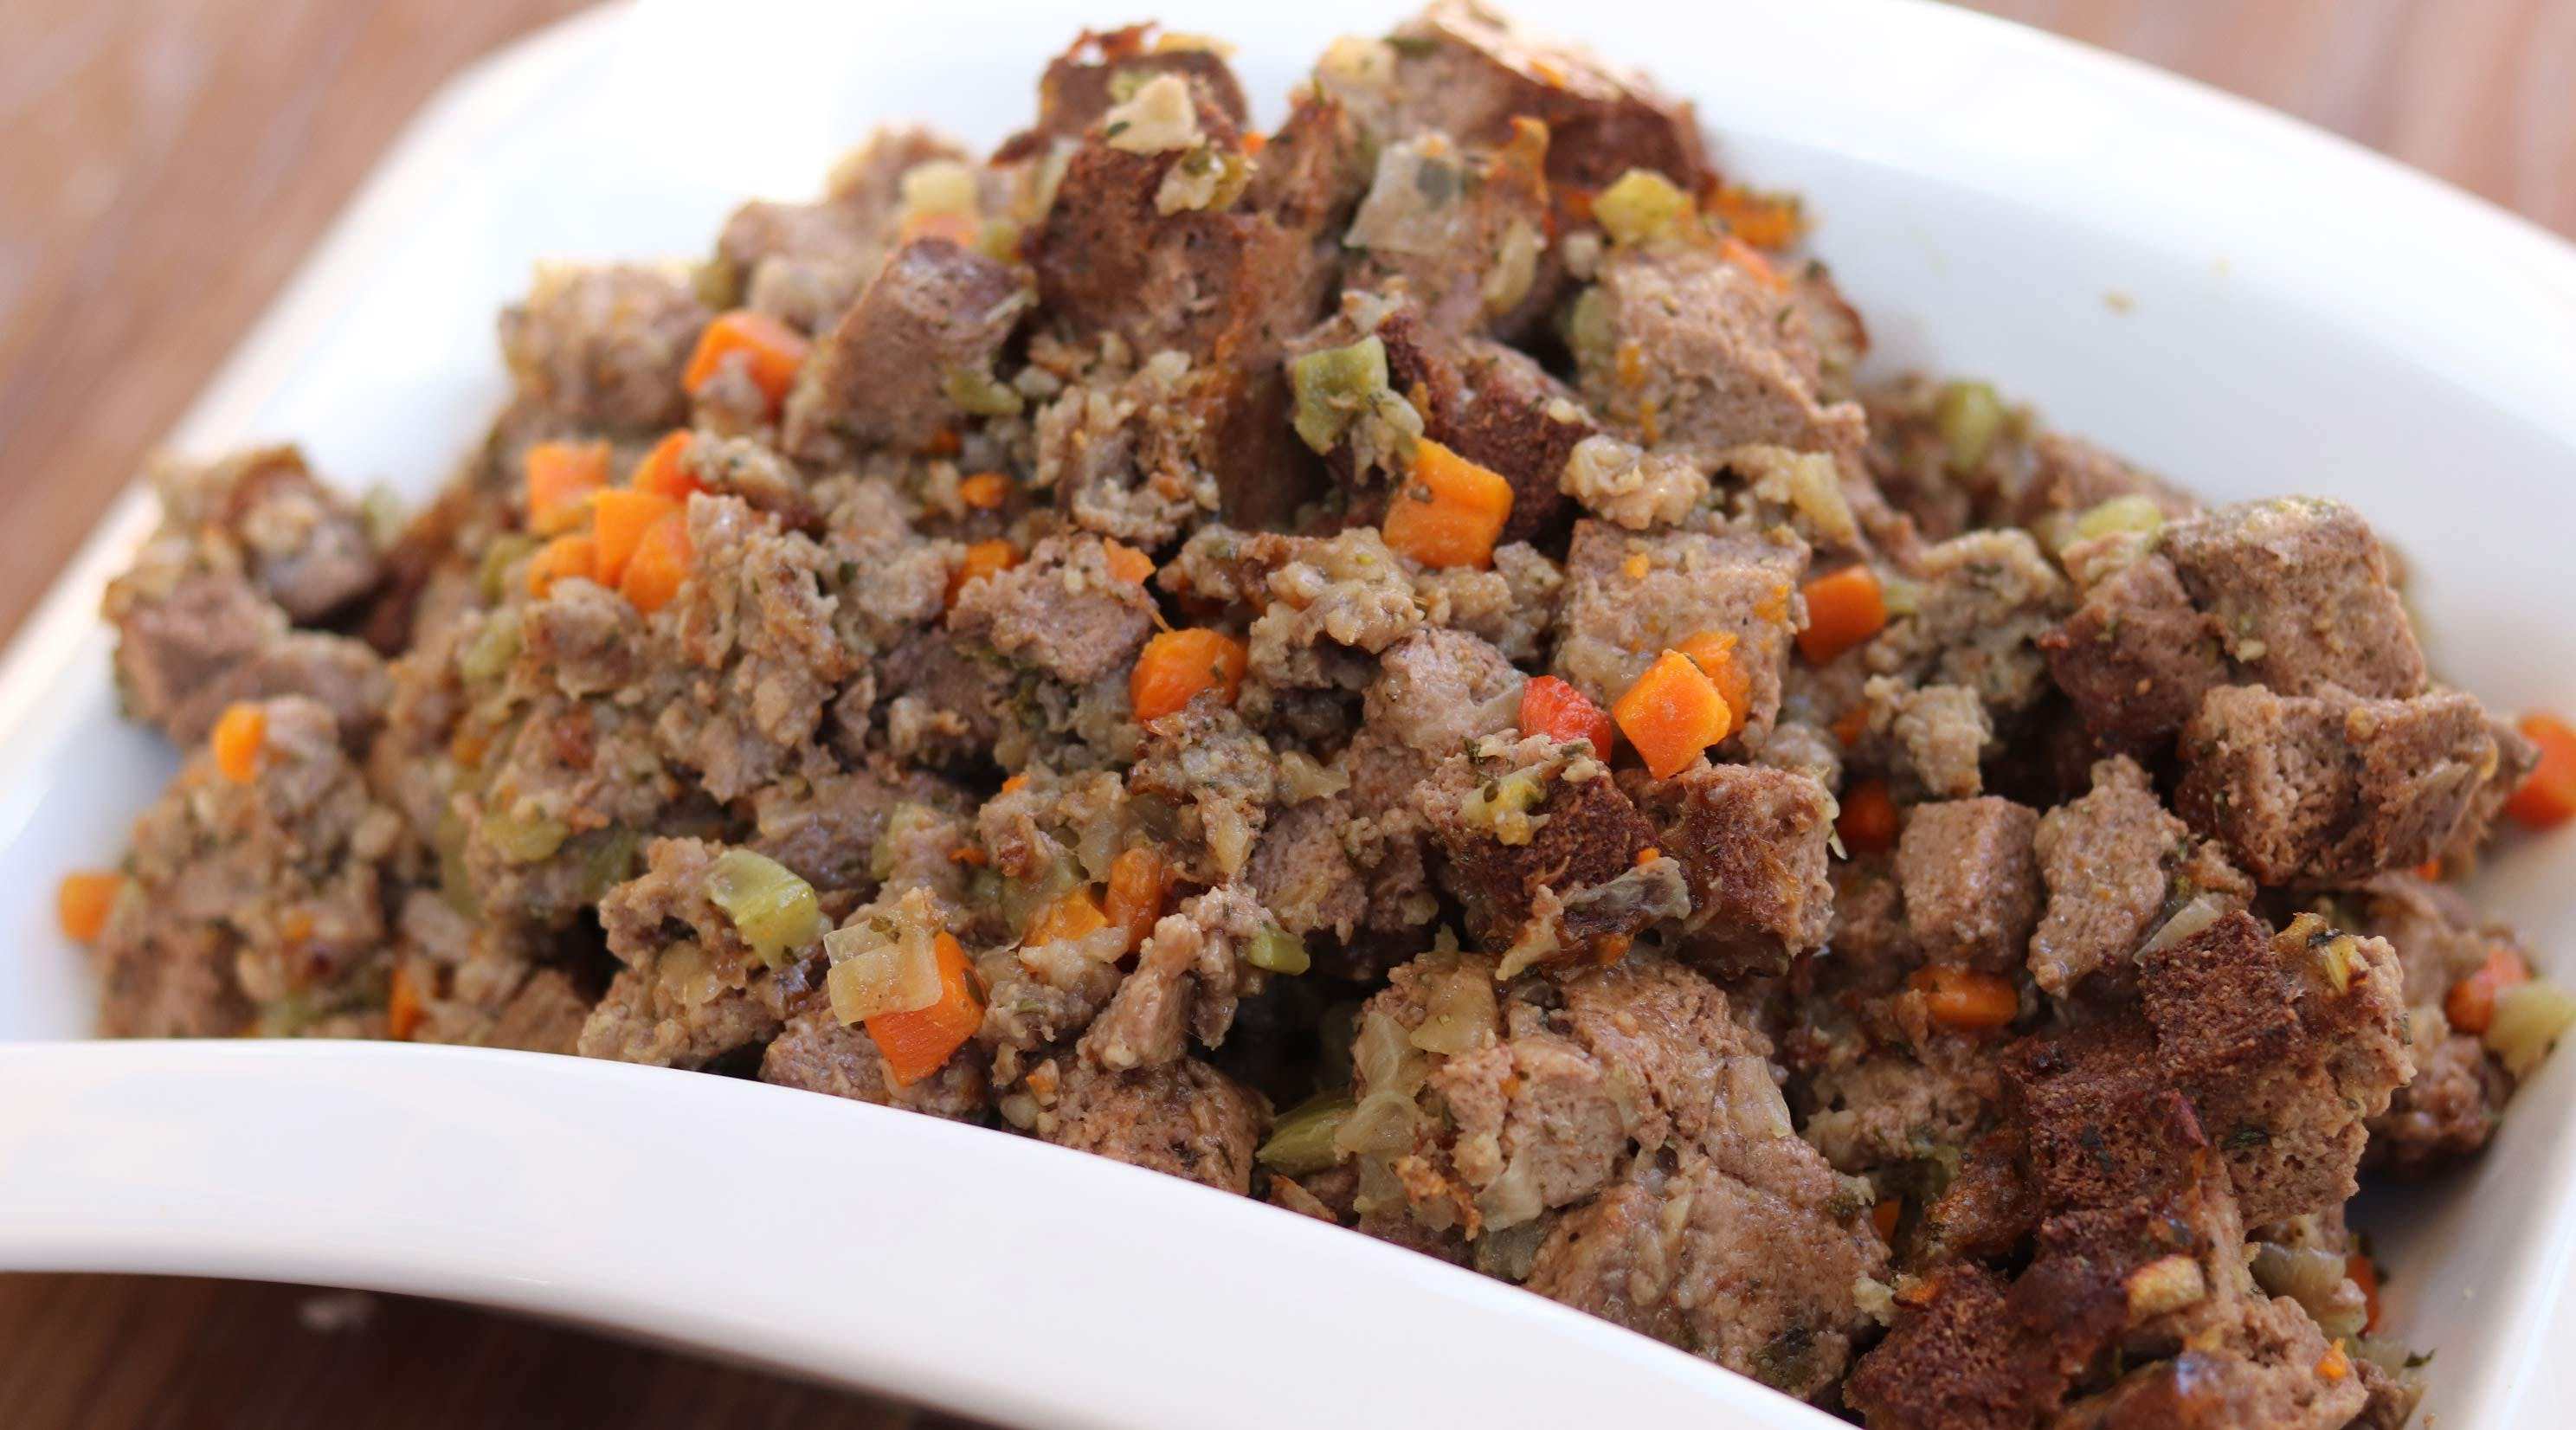 Here's How to Make Keto Stuffing for Thanksgiving